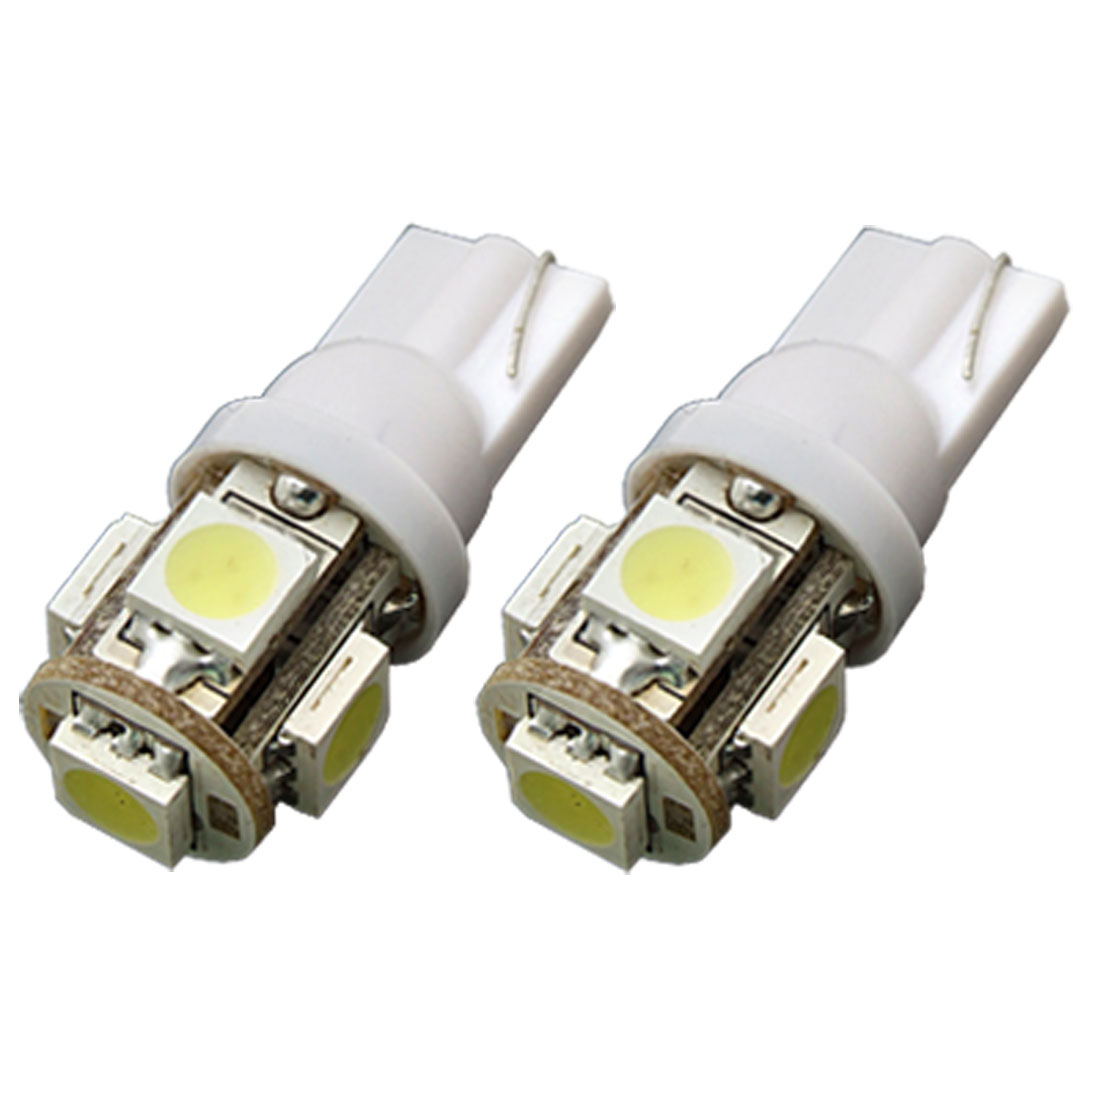 2 x T10 5 SMD 5050 LED Auto Car Lamp 12V Vehicle Signal Lights